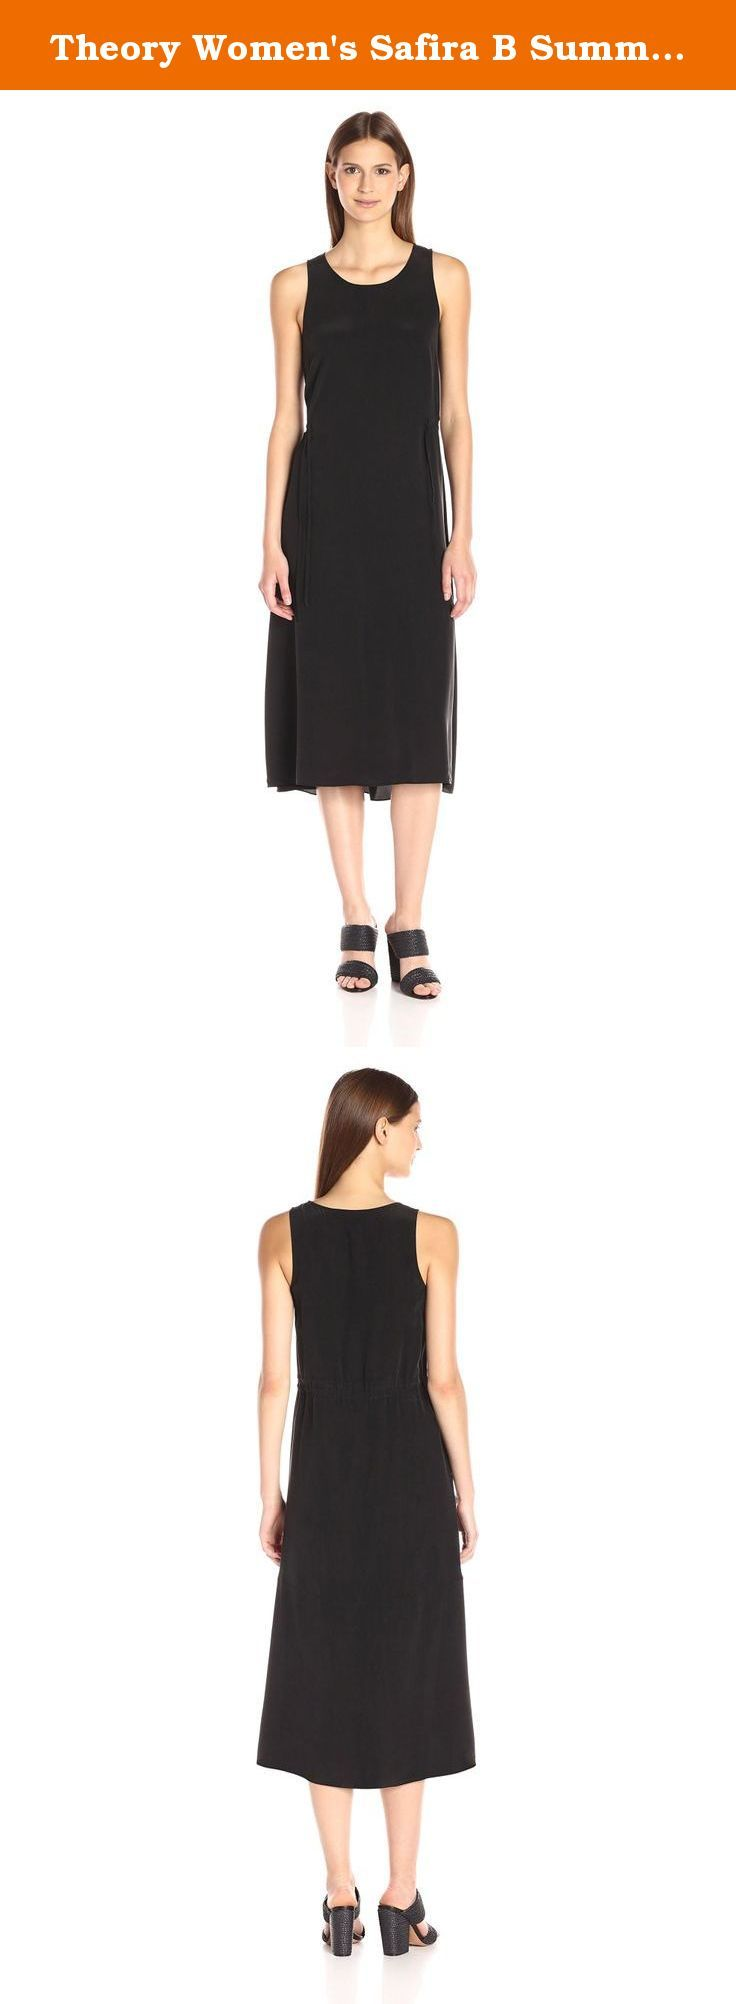 Theory Women's Safira B Summer Silk Dress, Black, 0. Washed silk, midi-length tank dress with two tie's that cinch at the side.